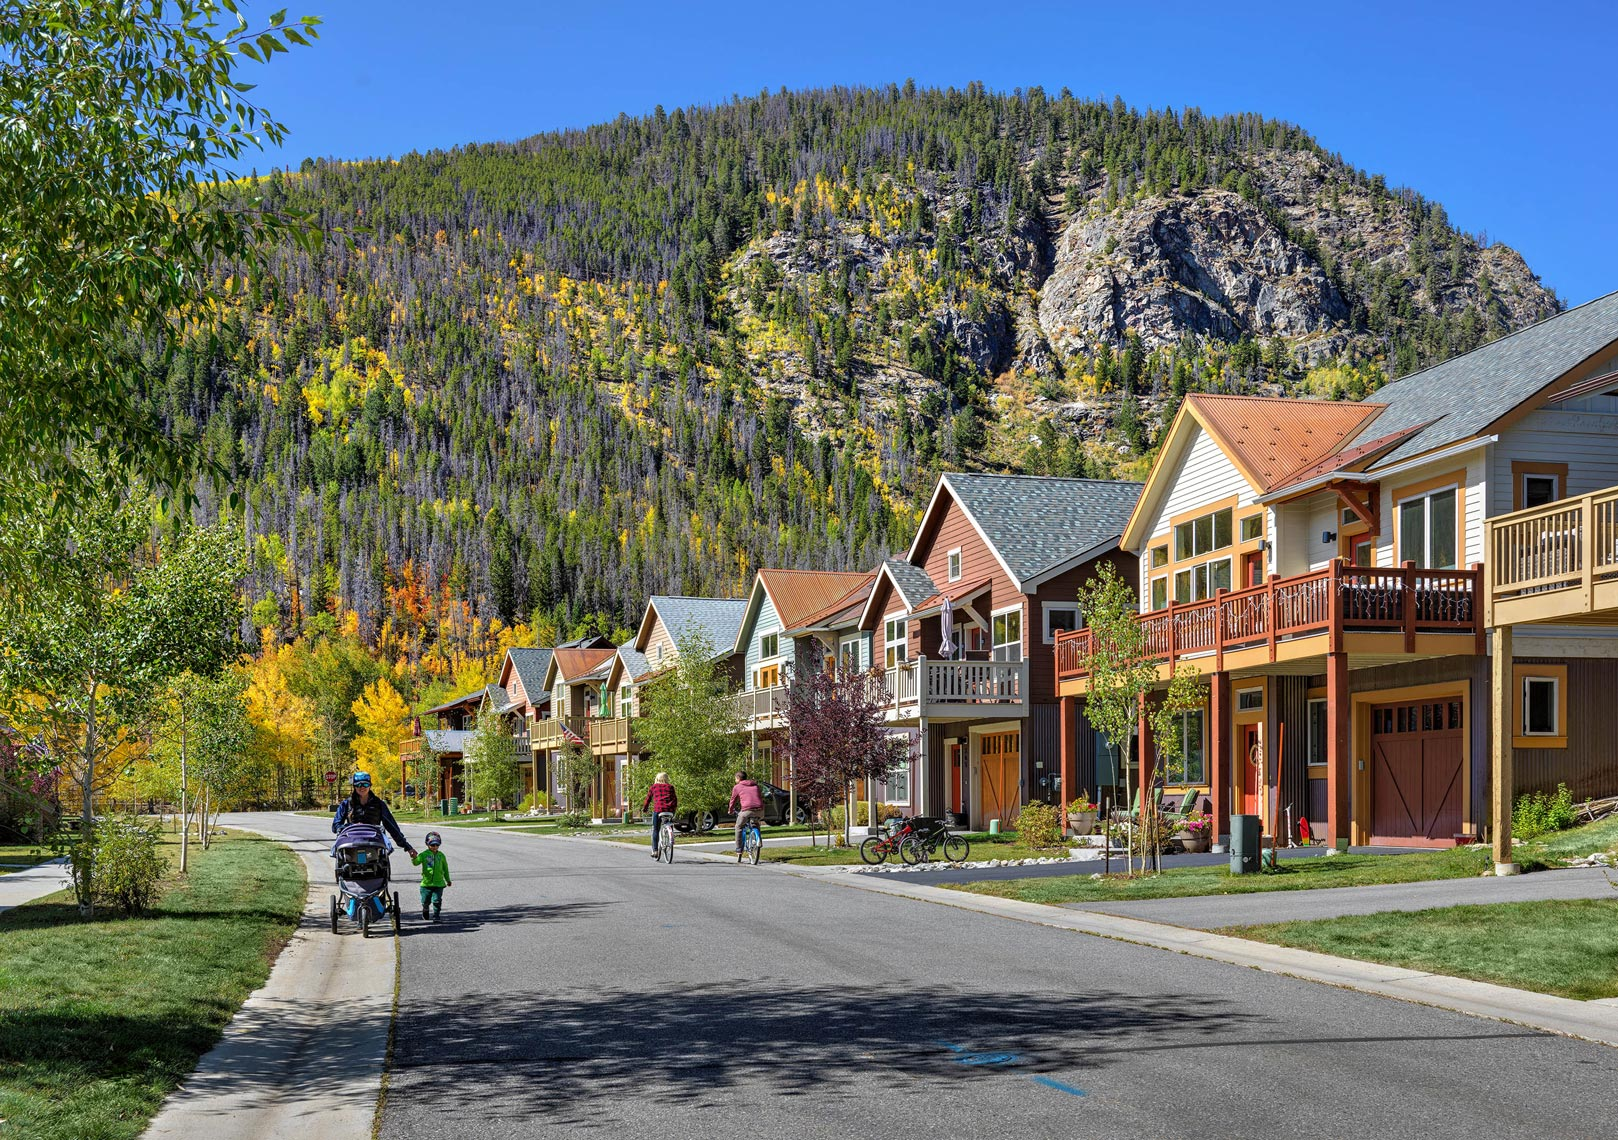 Peak One Neighborhood Frisco Colorado | Maylone Architectural Photo